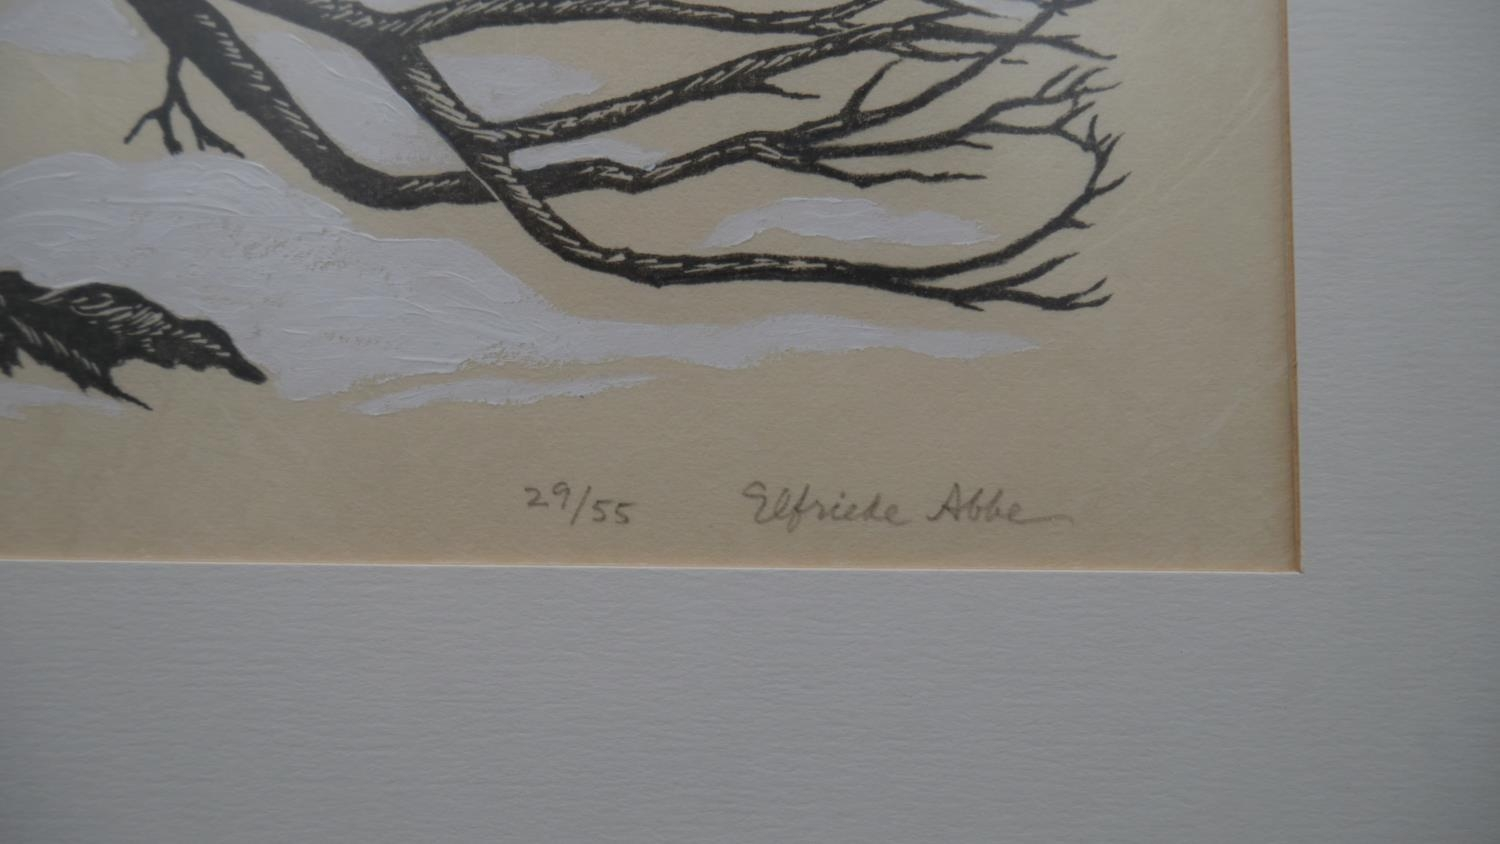 Elfriede Martha Abbe (1919-2012), a signed limited edition woodblock print 29/55, Ancient - Image 3 of 6